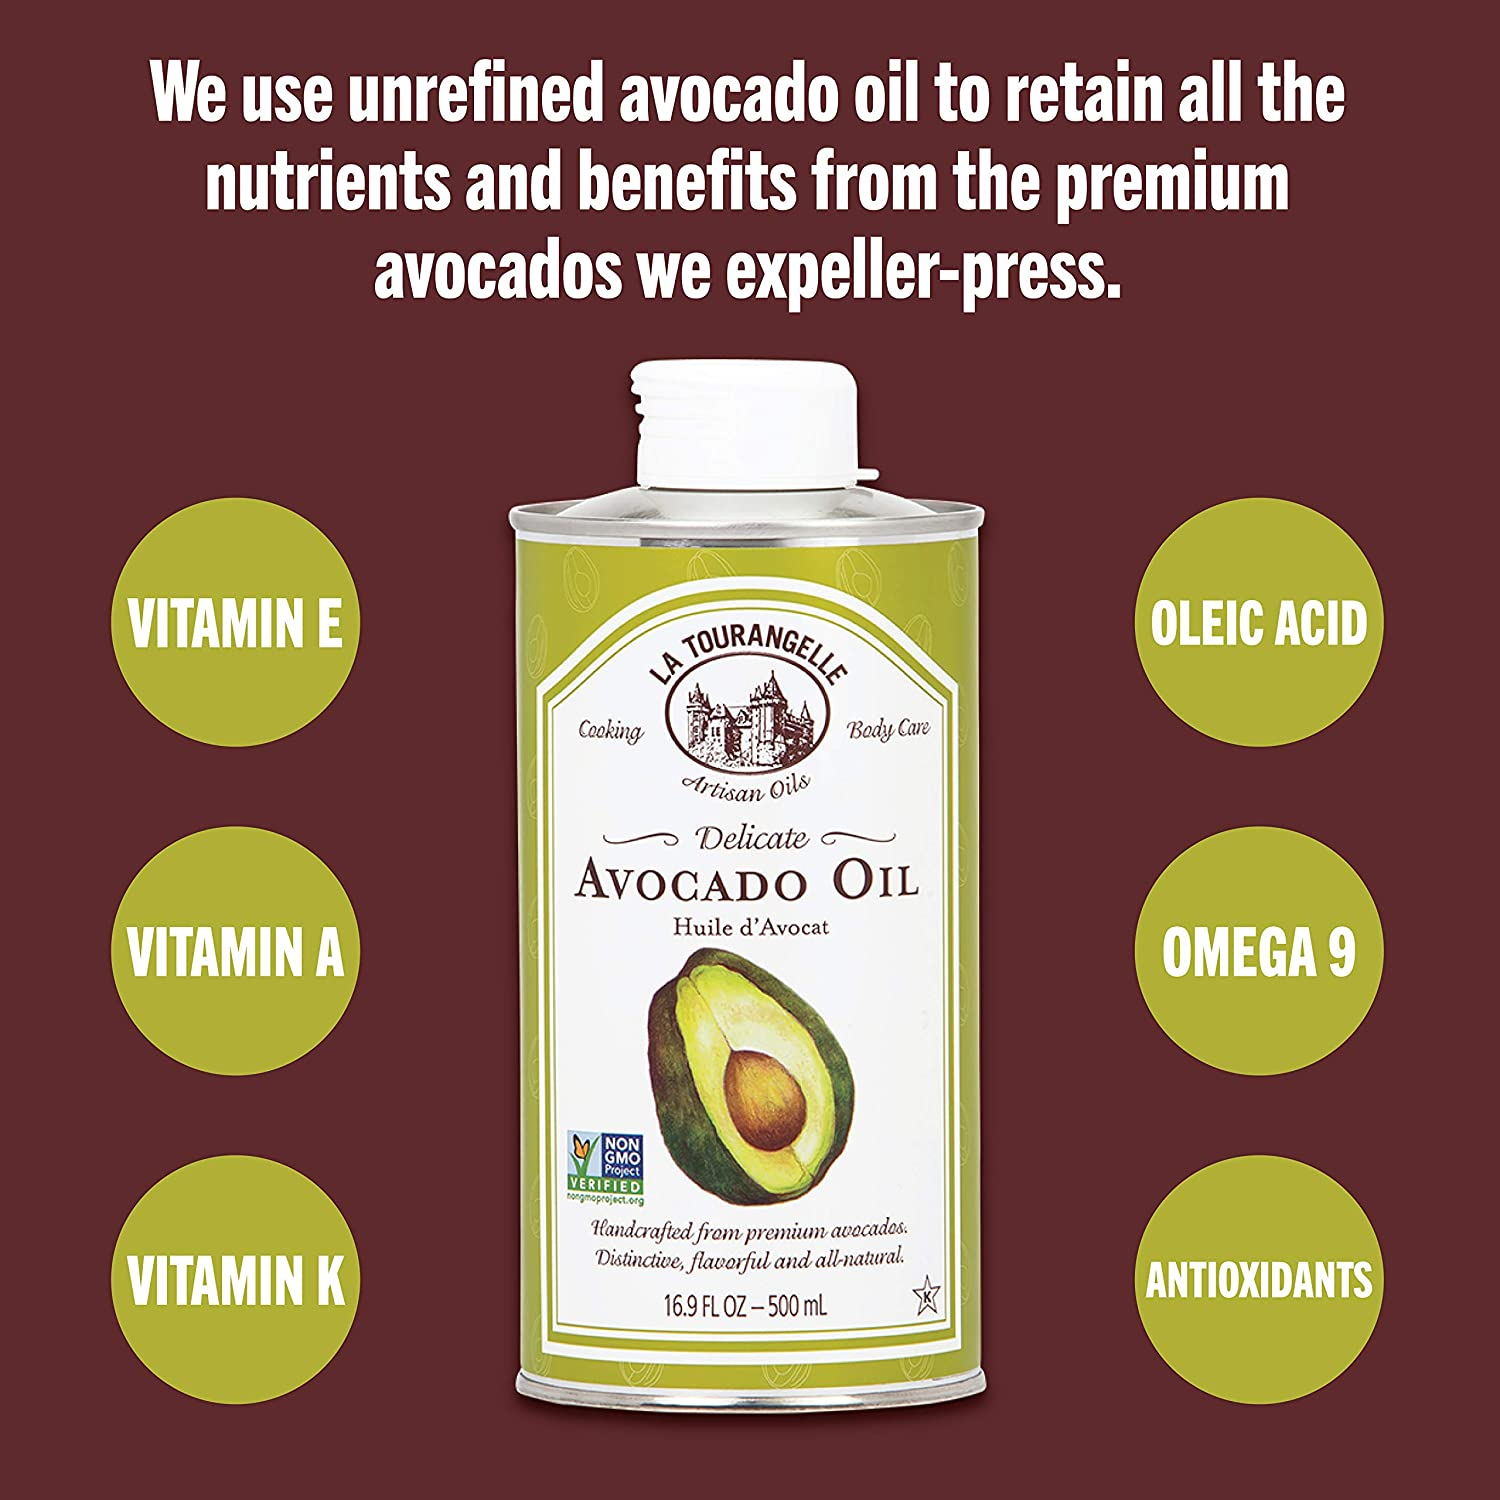 Avocado Oil 16.9 Fl Oz, All-Natural, Artisanal, Great for Salads, Fruit, Fish or Vegetables, Buttery Flavor